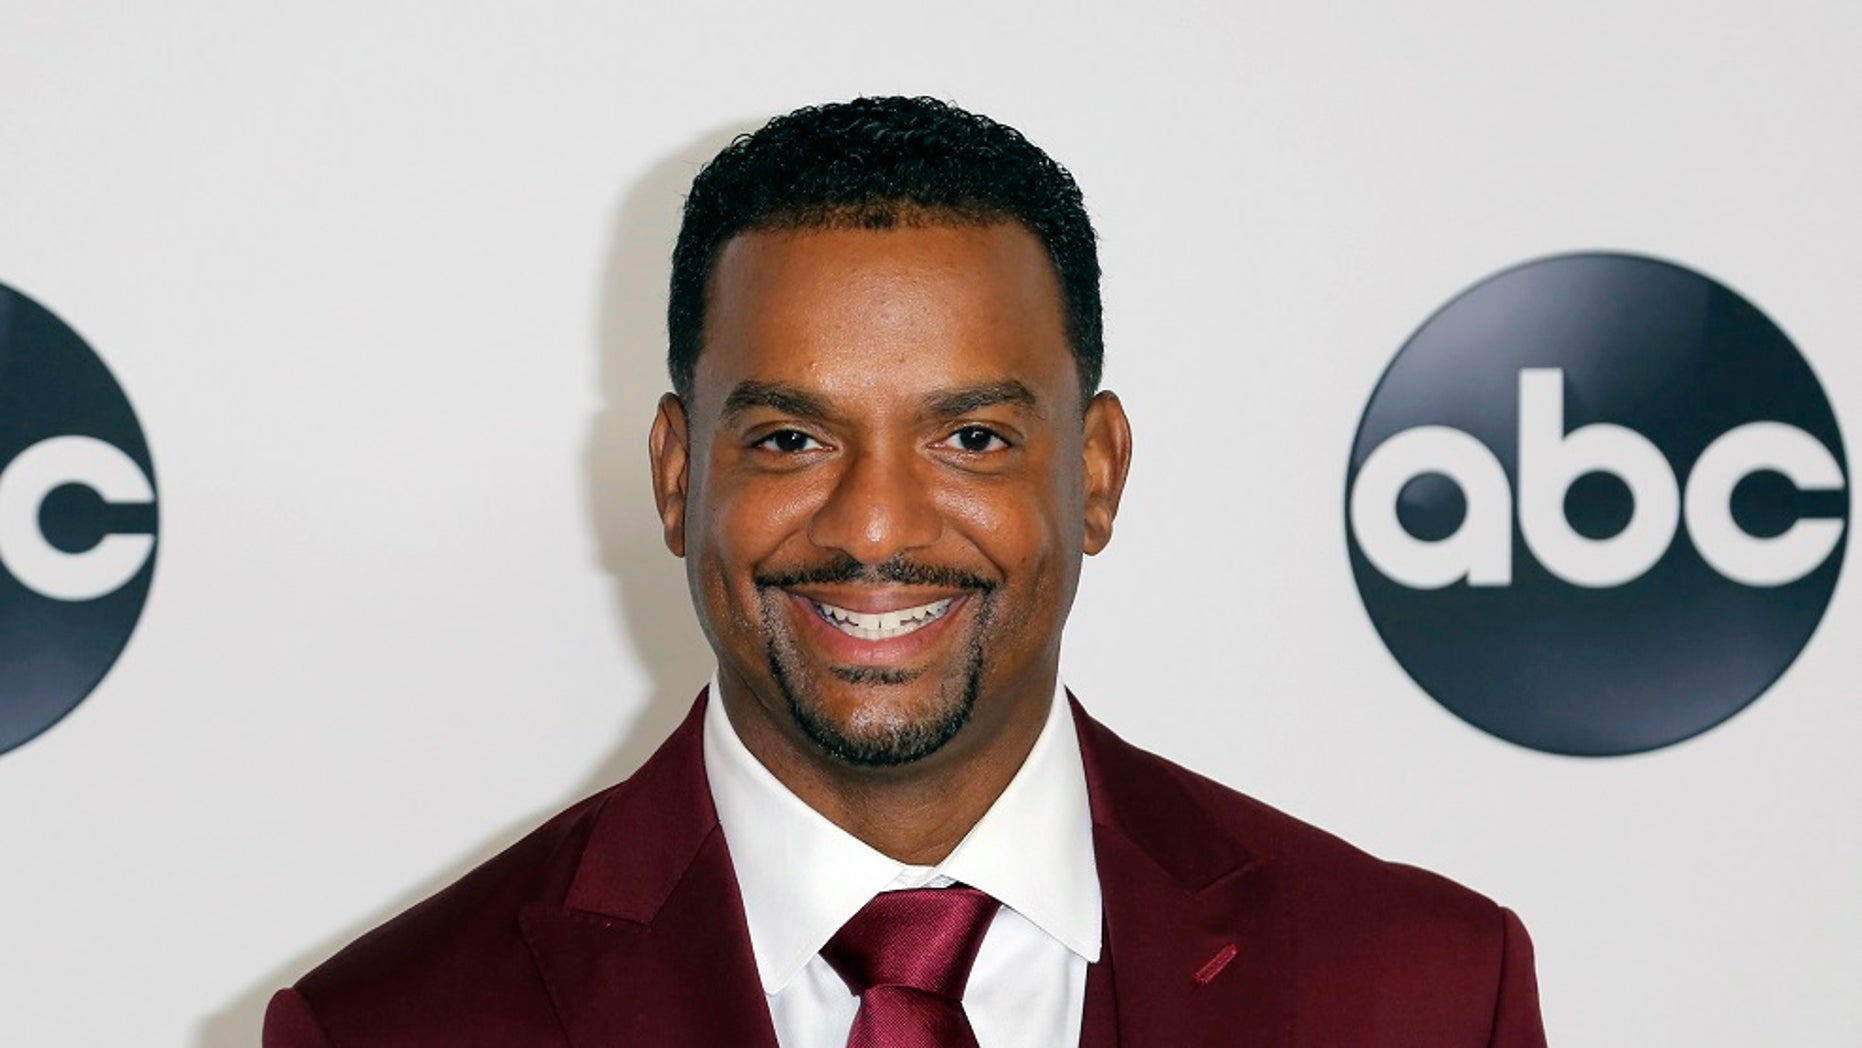 """FILE -Alfonso Ribeiro has been denied a copyright for the """"Carlton"""" dance, which he's suing two videogame makers over. The denial from the U.S. Copyright Office was revealed Wednesday in a motion to dismiss Ribeiro's lawsuit against Take-Two Interactive, the makers of 2K Sports, which Ribeiro says illegally makes use of the dance. (Photo by Willy Sanjuan/Invision/AP, File)"""